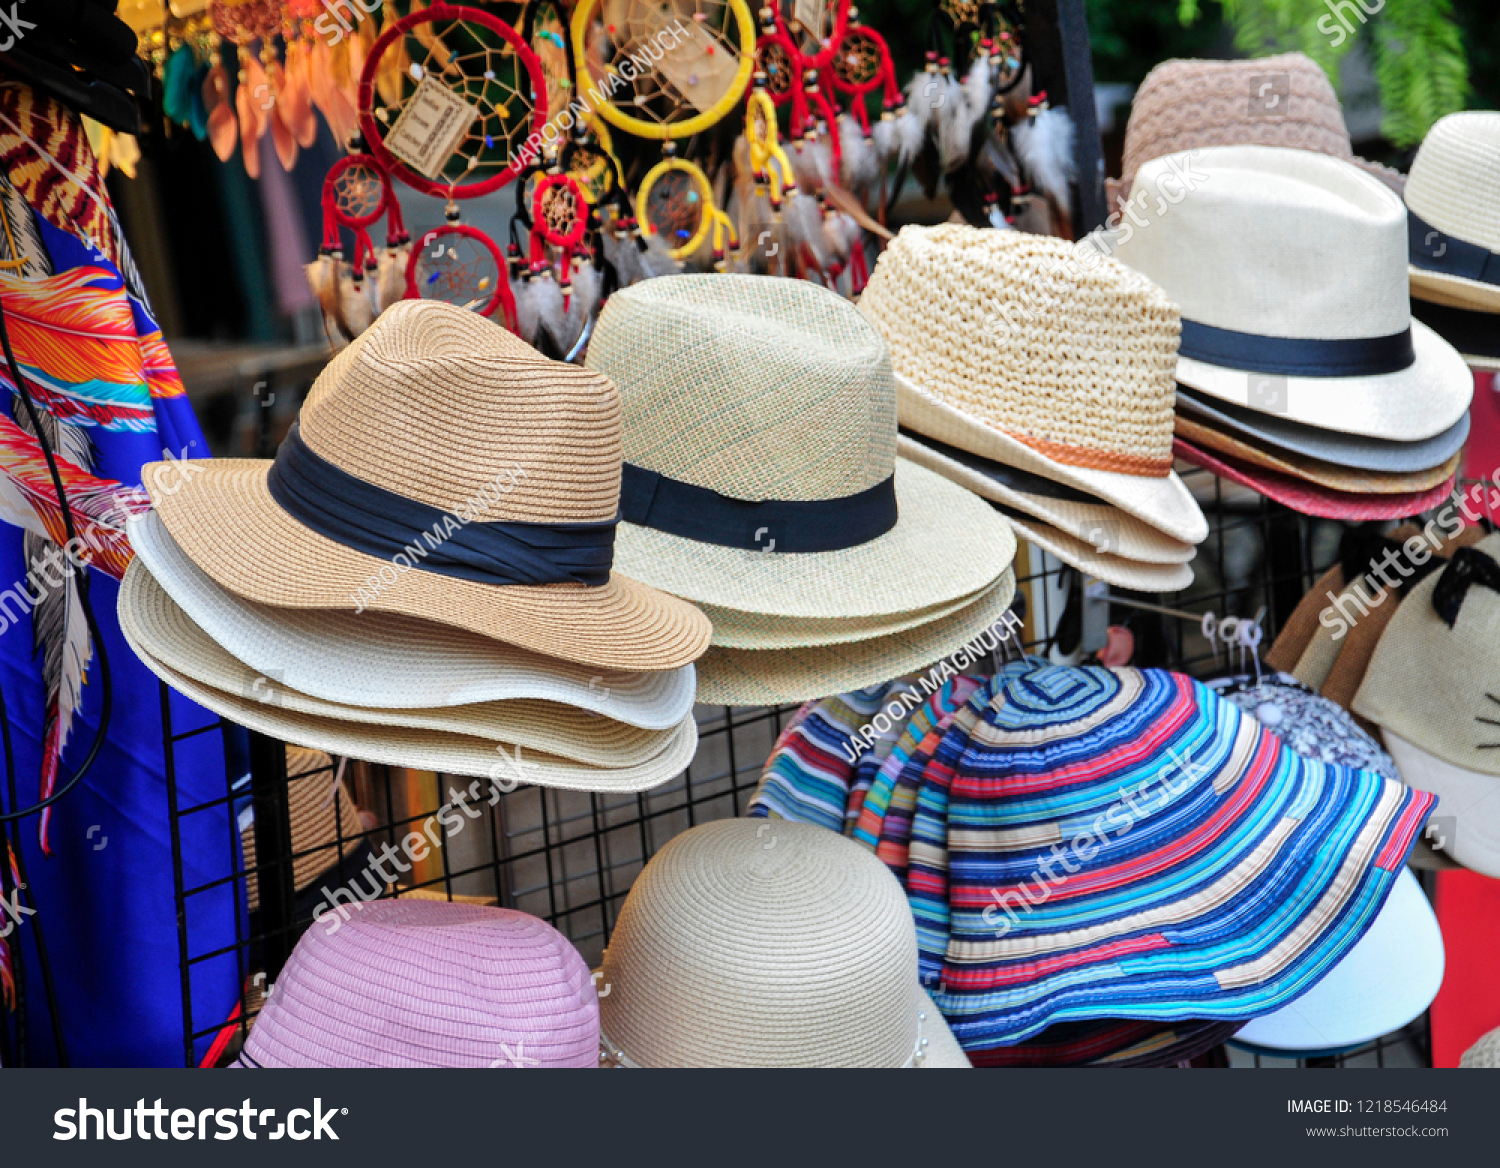 Straw hat fashion in retro vintage style on sale at the marketplace 69cecdd4aa4